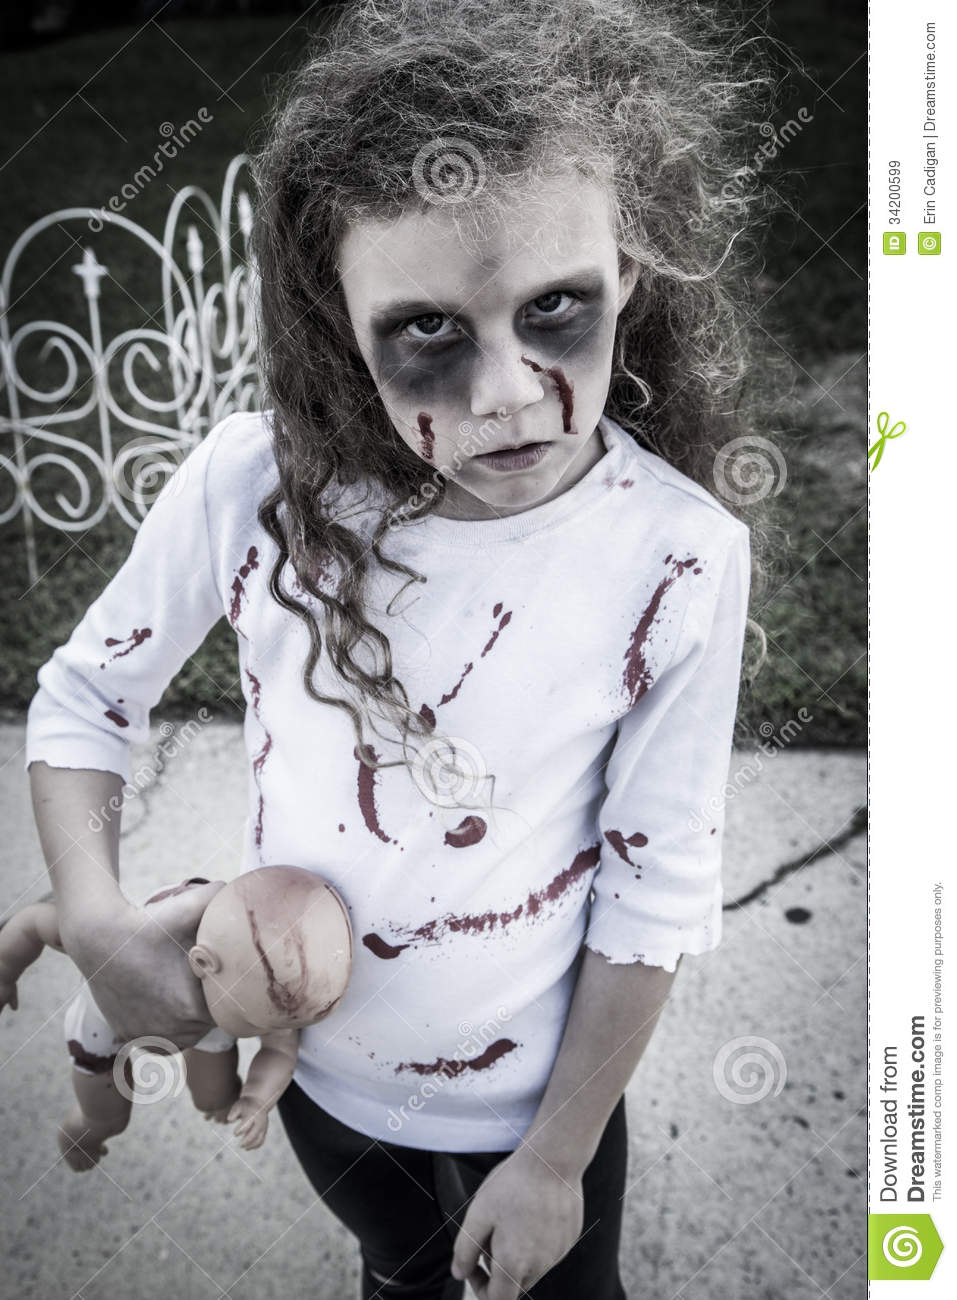 Cool Scary Halloween Costumes For Kids Girls